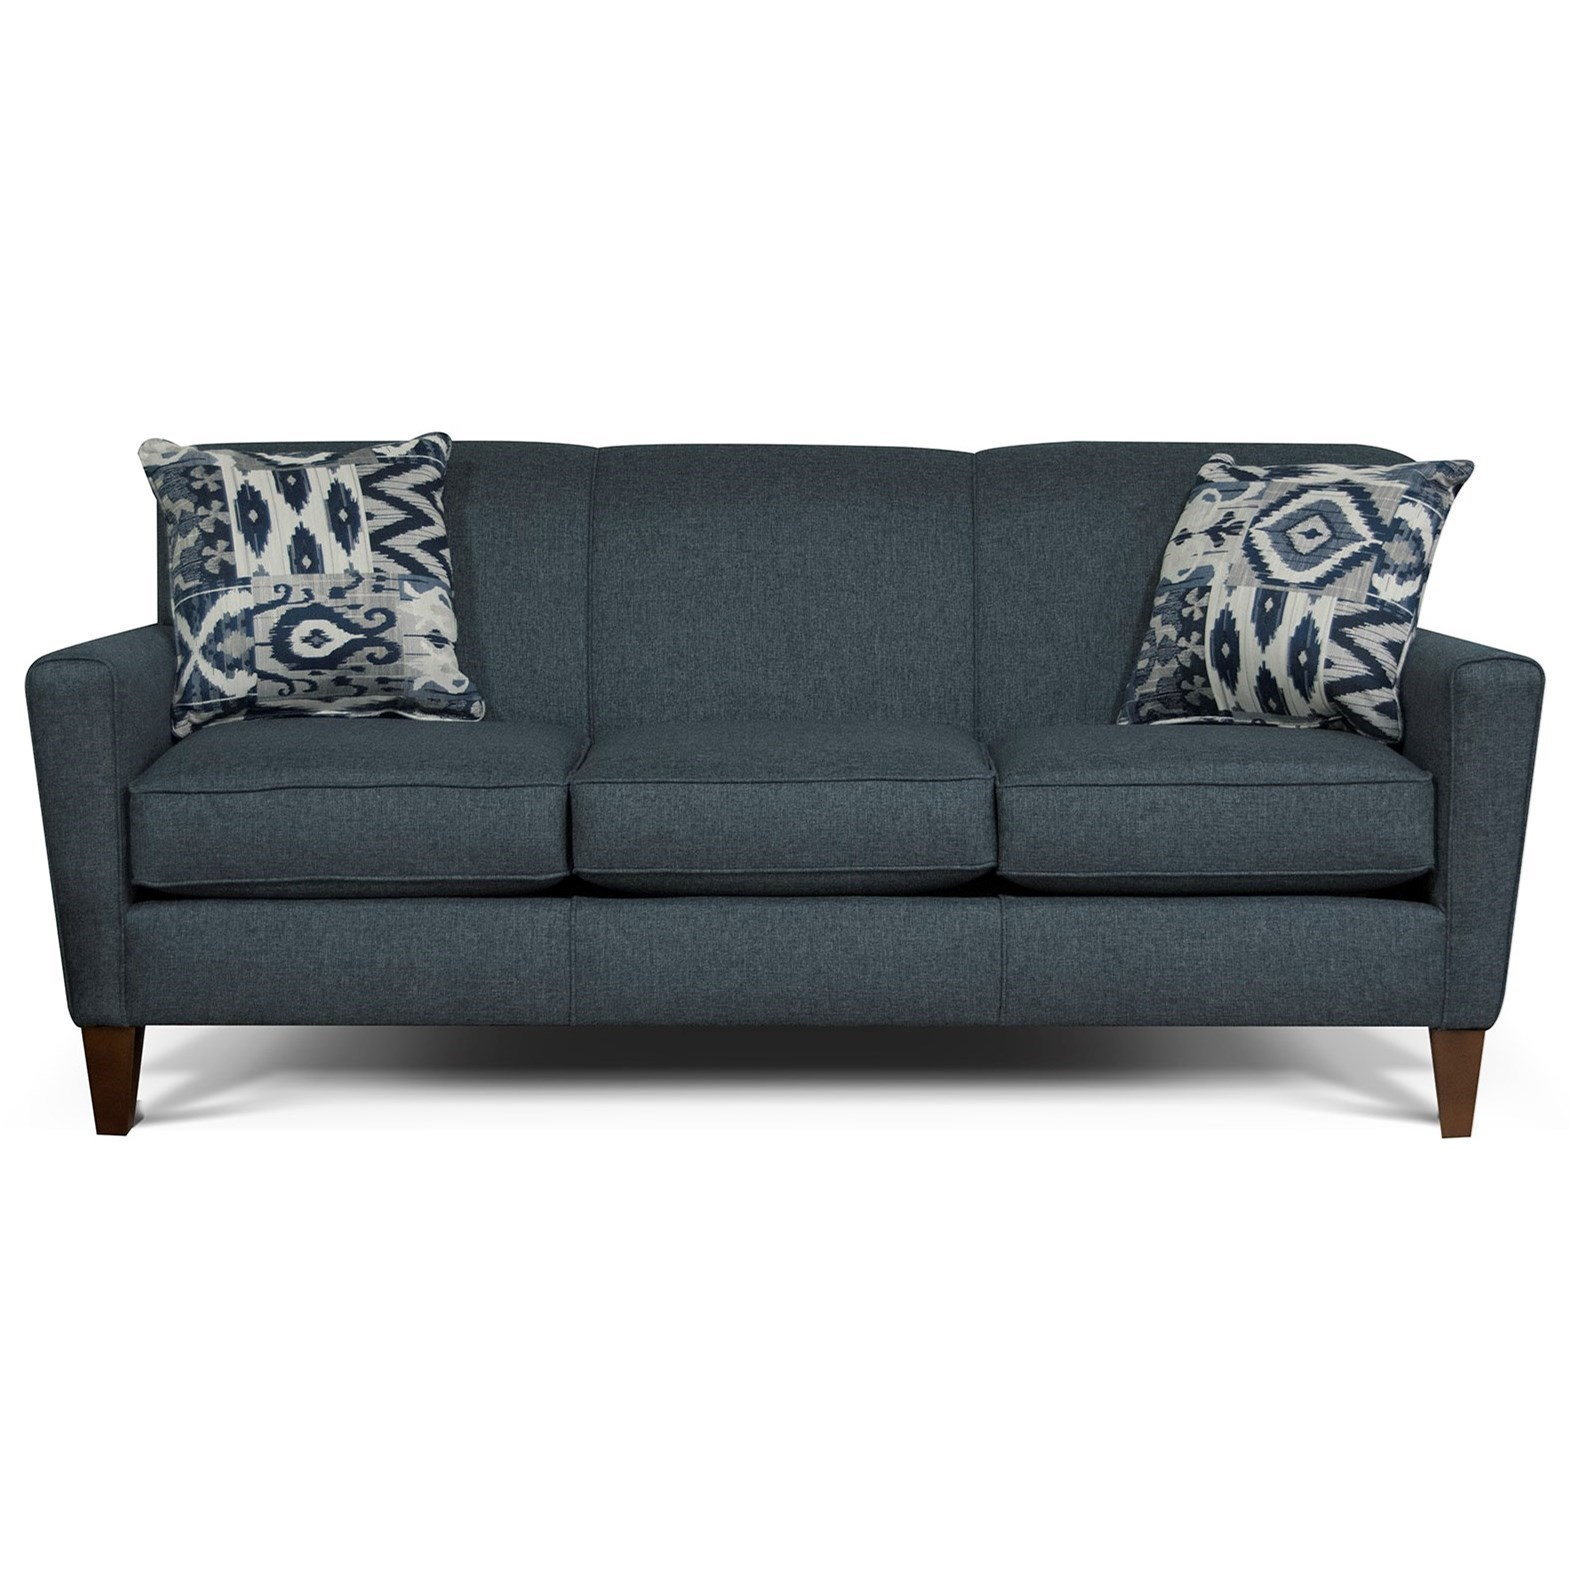 Sofa Outlet Paisley England Collegedale 6205 Contemporary Upholstered Sofa Efo